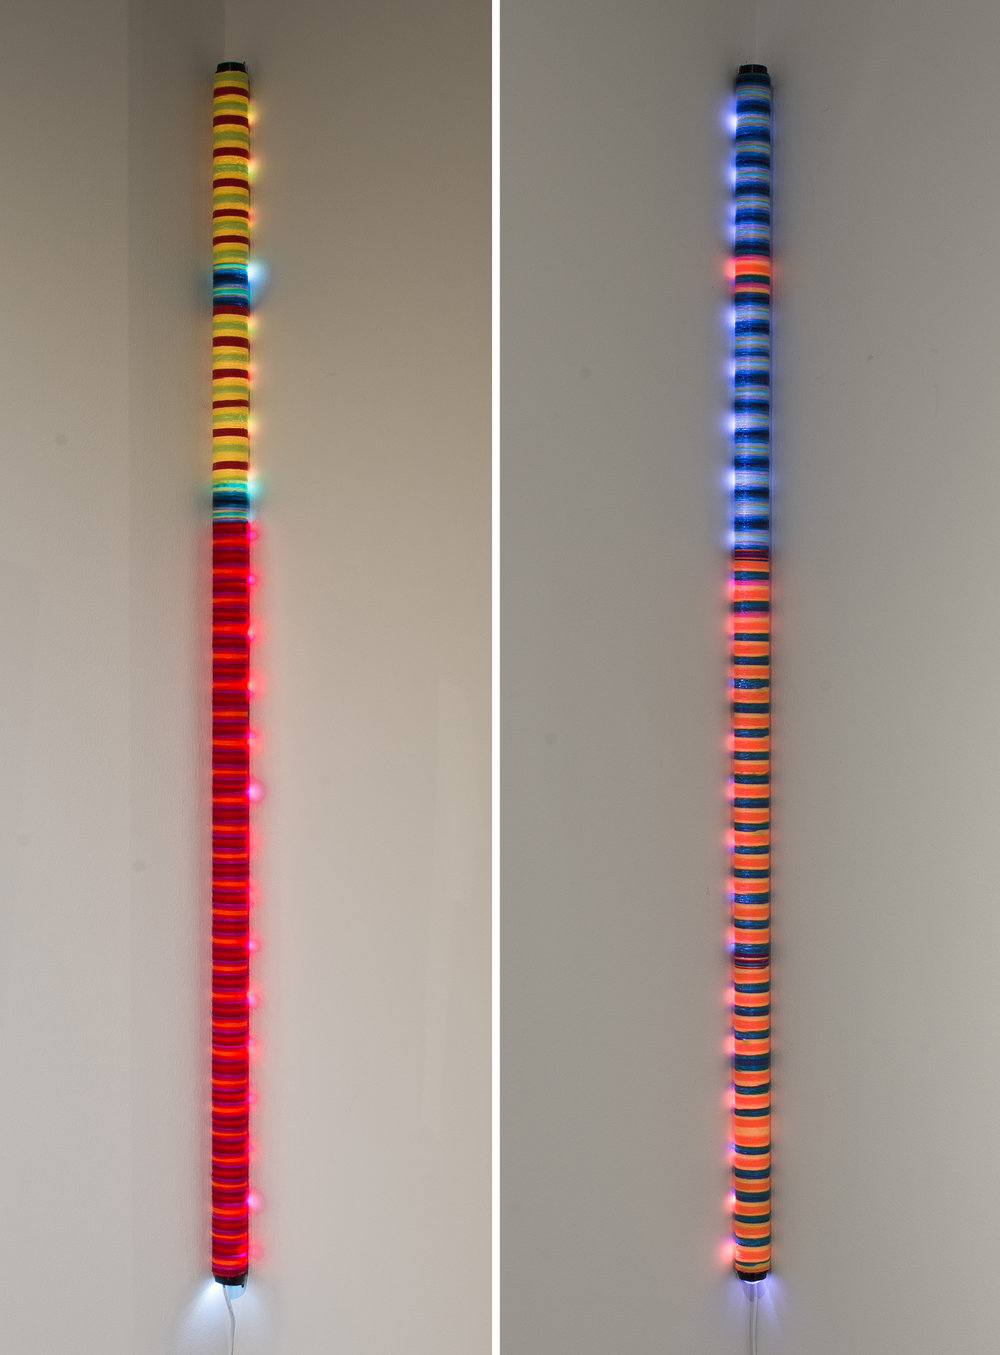 Hallie Beams: Petite Baton (4ft) - Mixed Media2014Other colors are available!**Available for purchaseExhibited at:Gallery 701 at the Long Center, January – October, 2016 (Austin, Texas)Art for the People, May – June, 2015 (Austin, Texas)In a relationship, we have many beams of light which are the positive aspects of the relationship.This helps the relationship stay fresh, and is why you keep coming back for more.